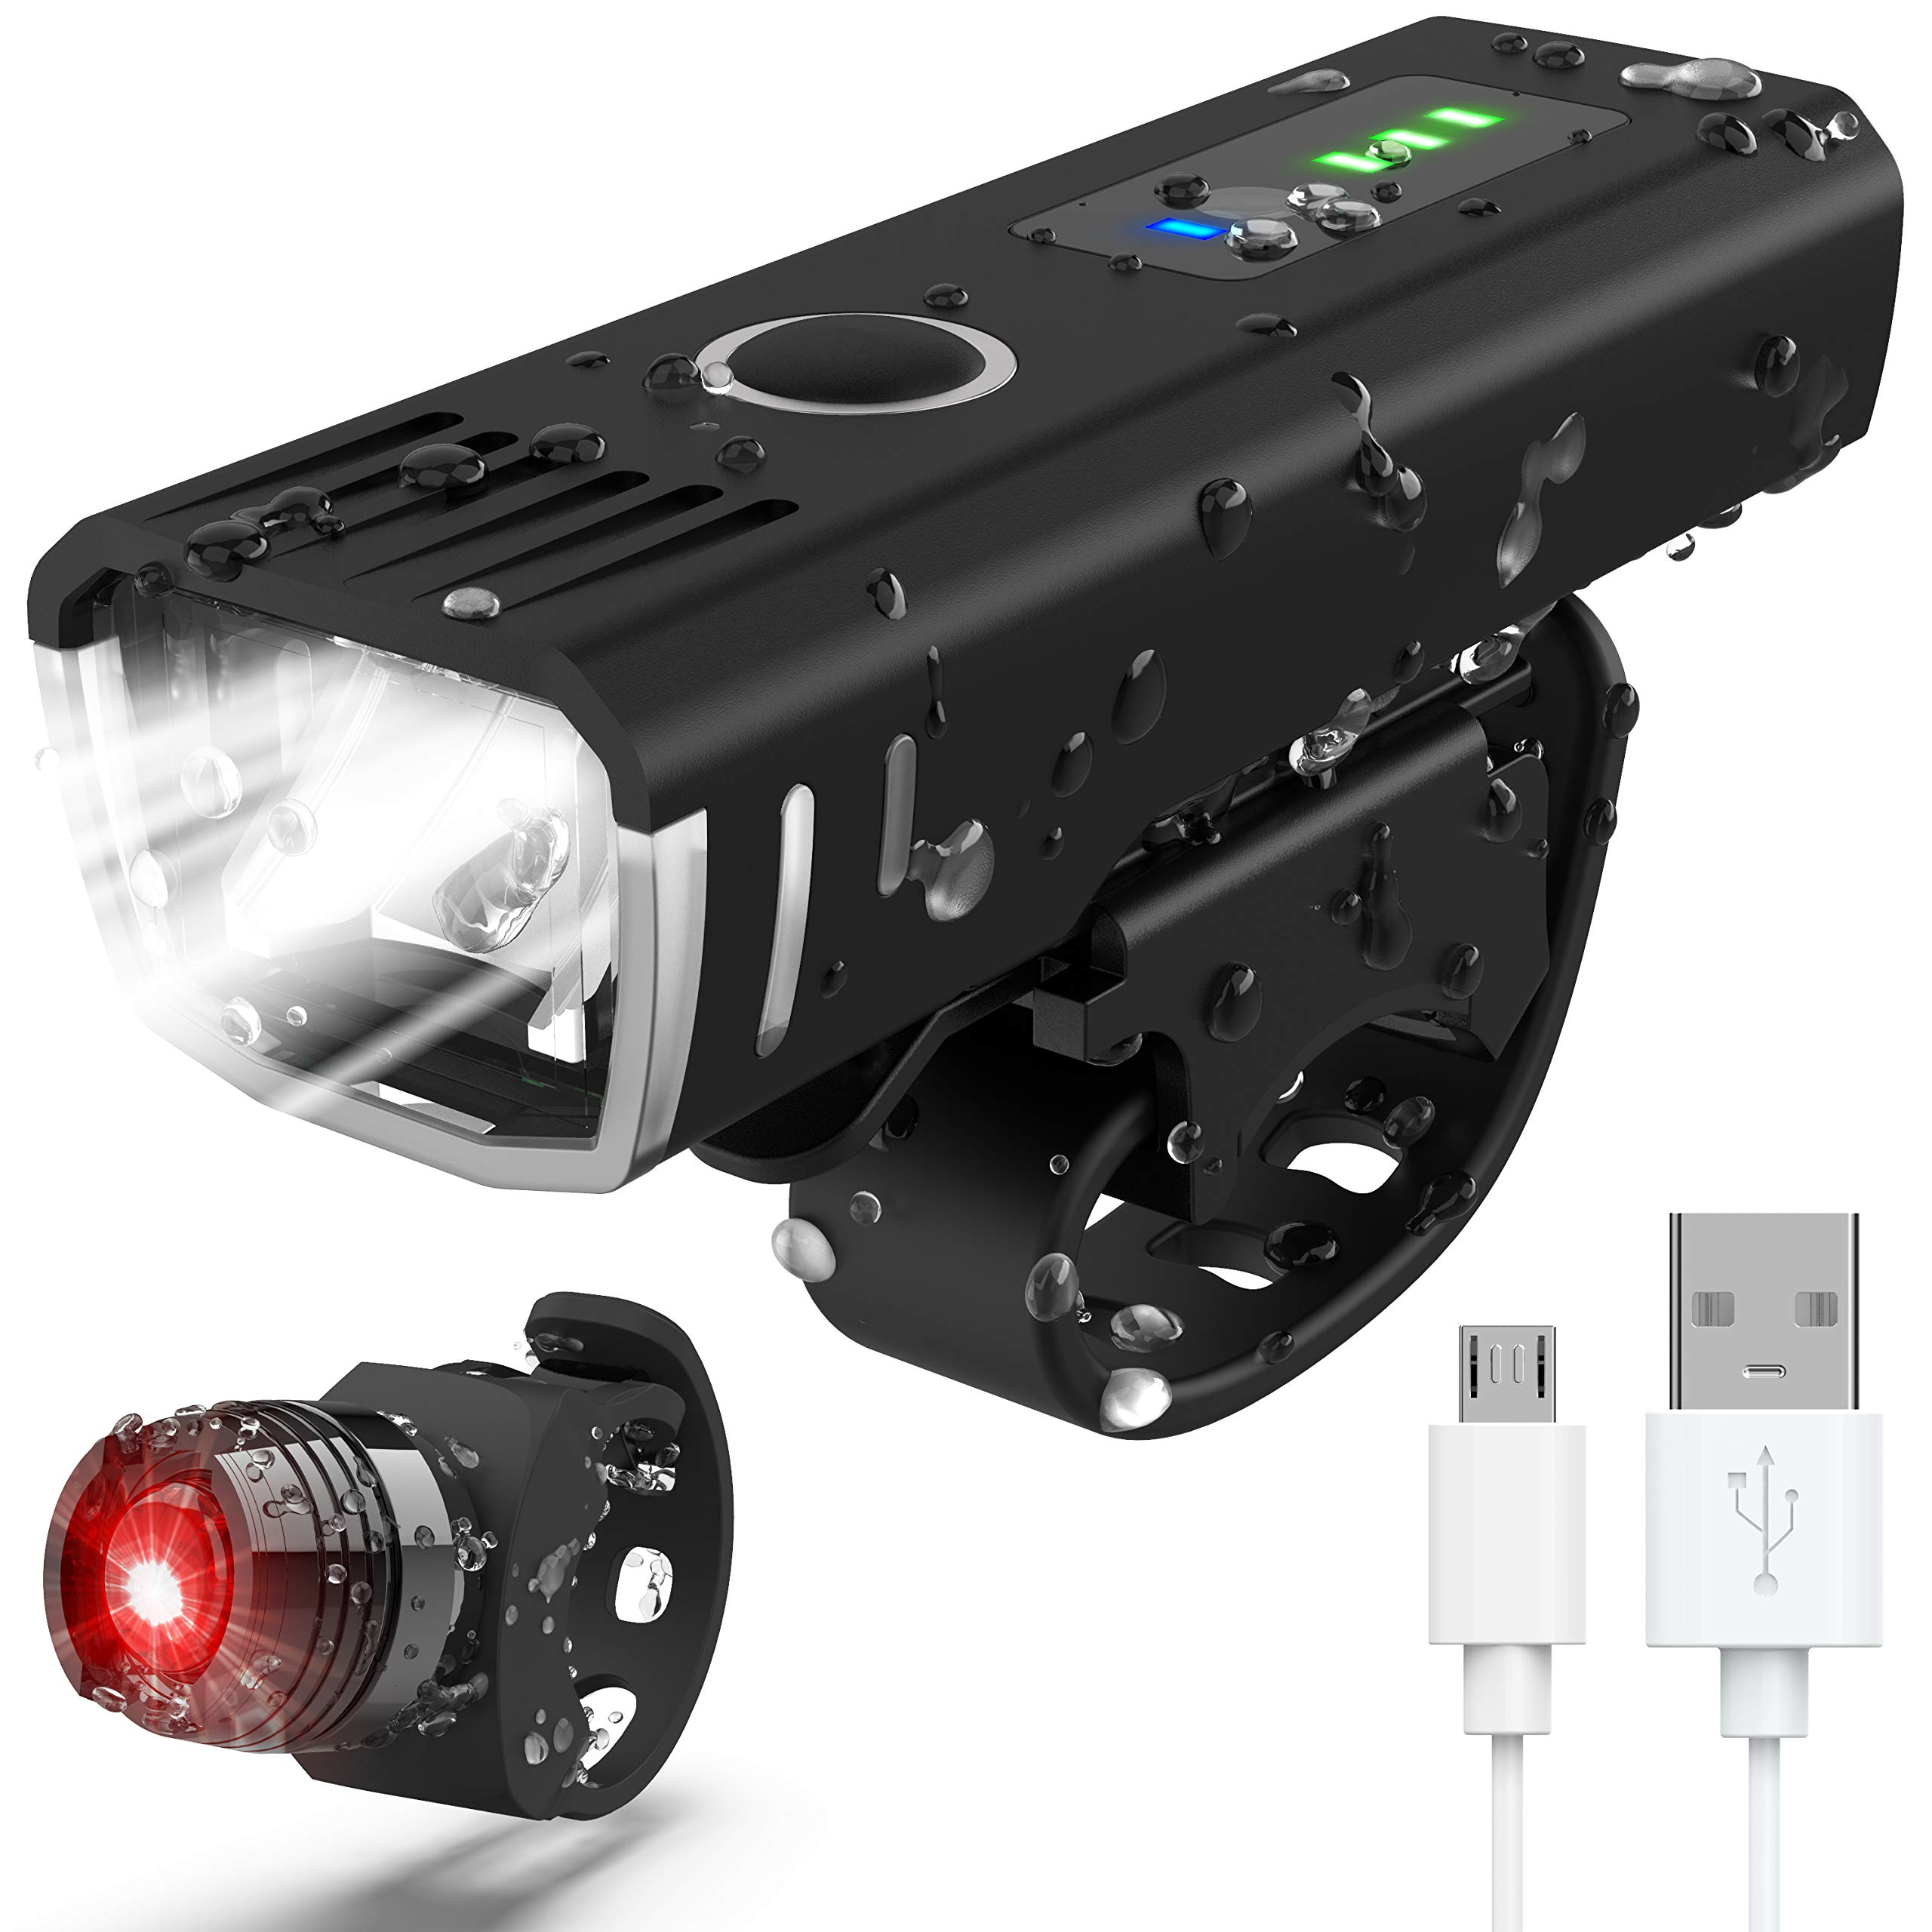 IANRTTE Bike Light Set, USB Rechargeable Super Bright LED Waterproof Headlight Front Lights and Back Rear Bike Lights,Easy Mount 4 Light Mode Cycle Lights Fits All Bicycles,Mountain,Road